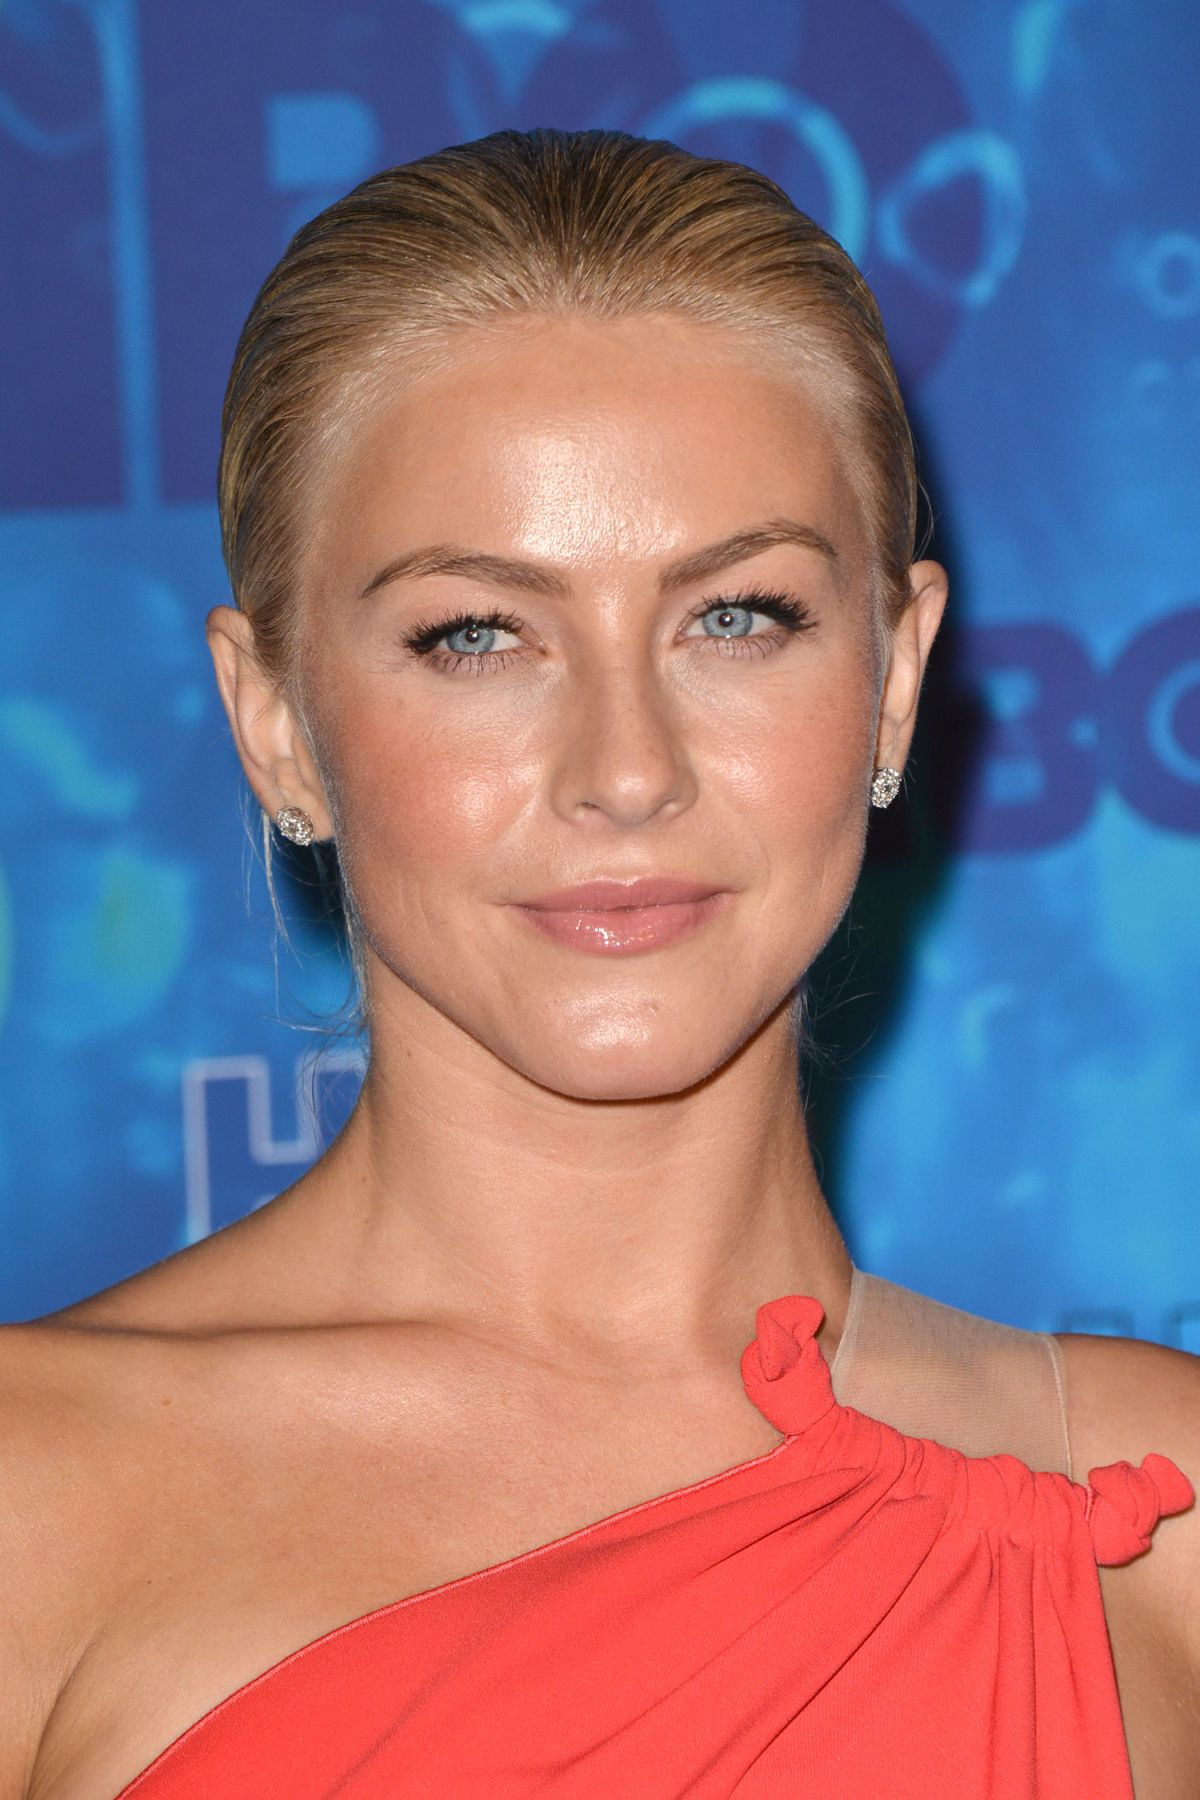 JULIANNE HOUGH at HBO's 2016 Emmy's After Party in Los Angeles 09/18/2016